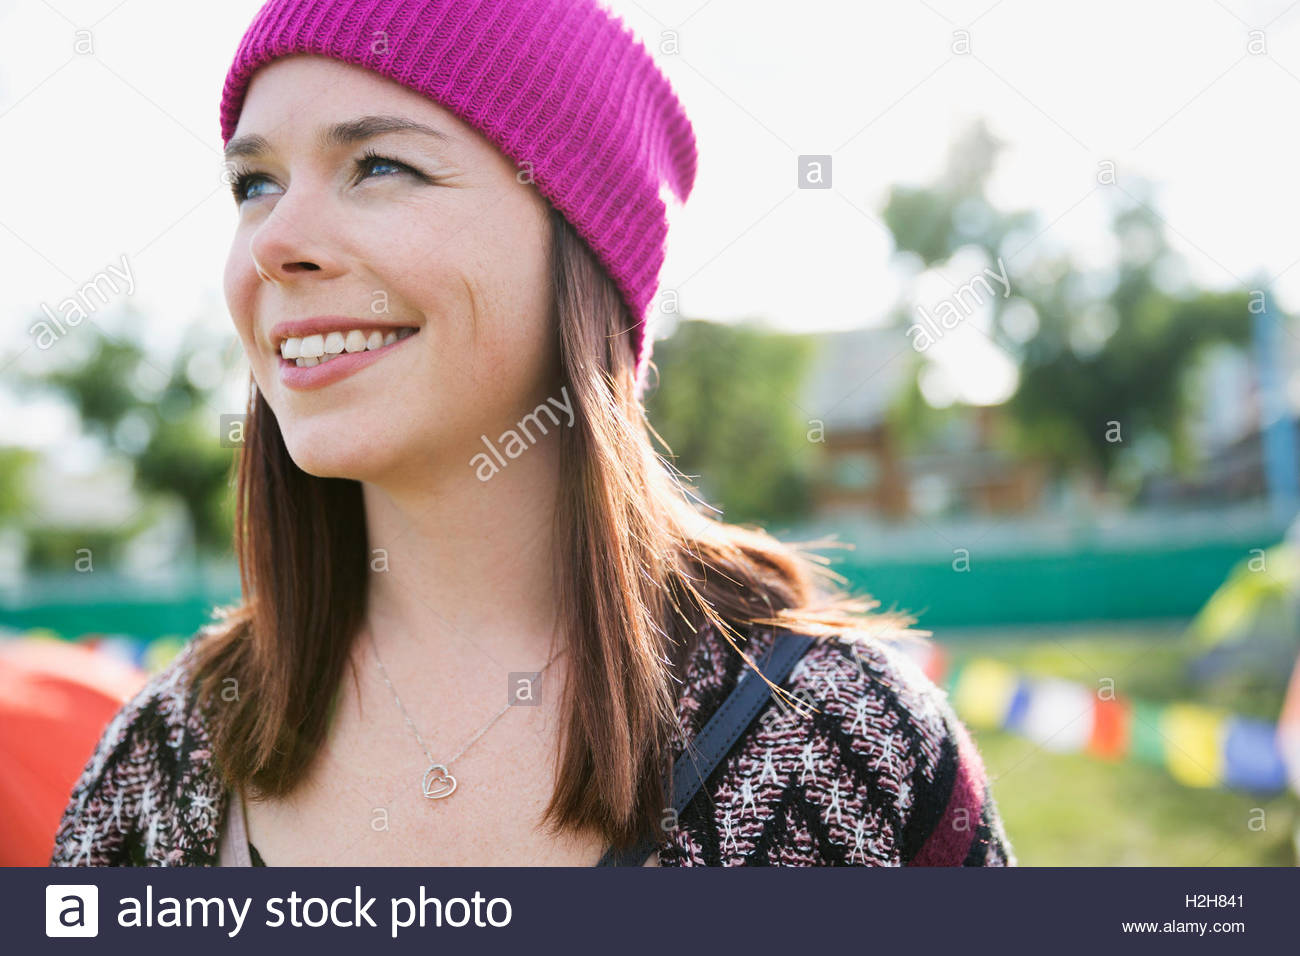 Portrait smiling brunette woman wearing stocking cap looking away at summer music festival campsite - Stock Image